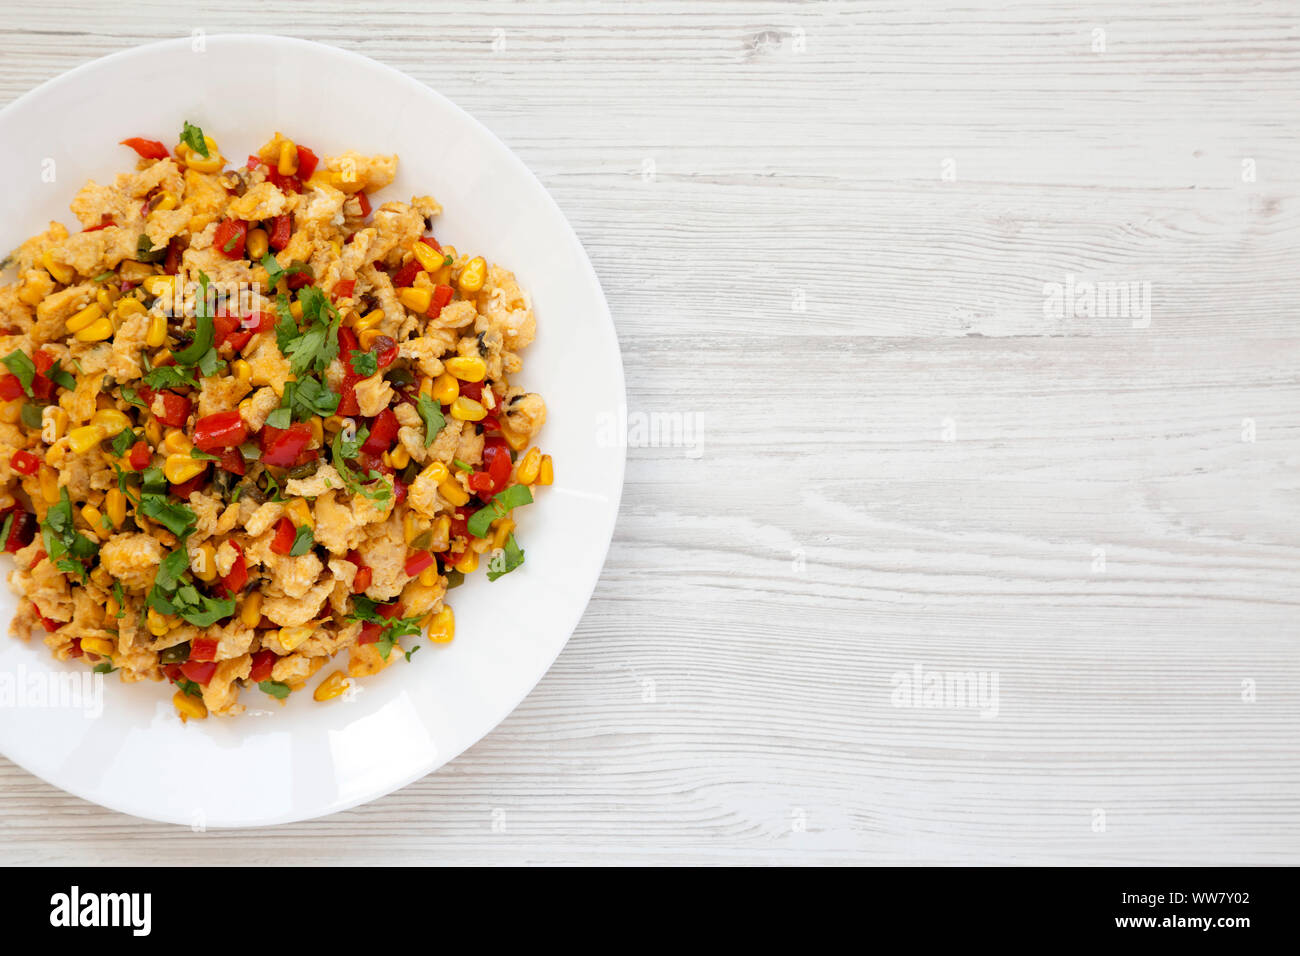 Homemade southwestern egg scramble on a white plate on a white wooden surface. Flat lay, top view, from above. Copy space. Stock Photo